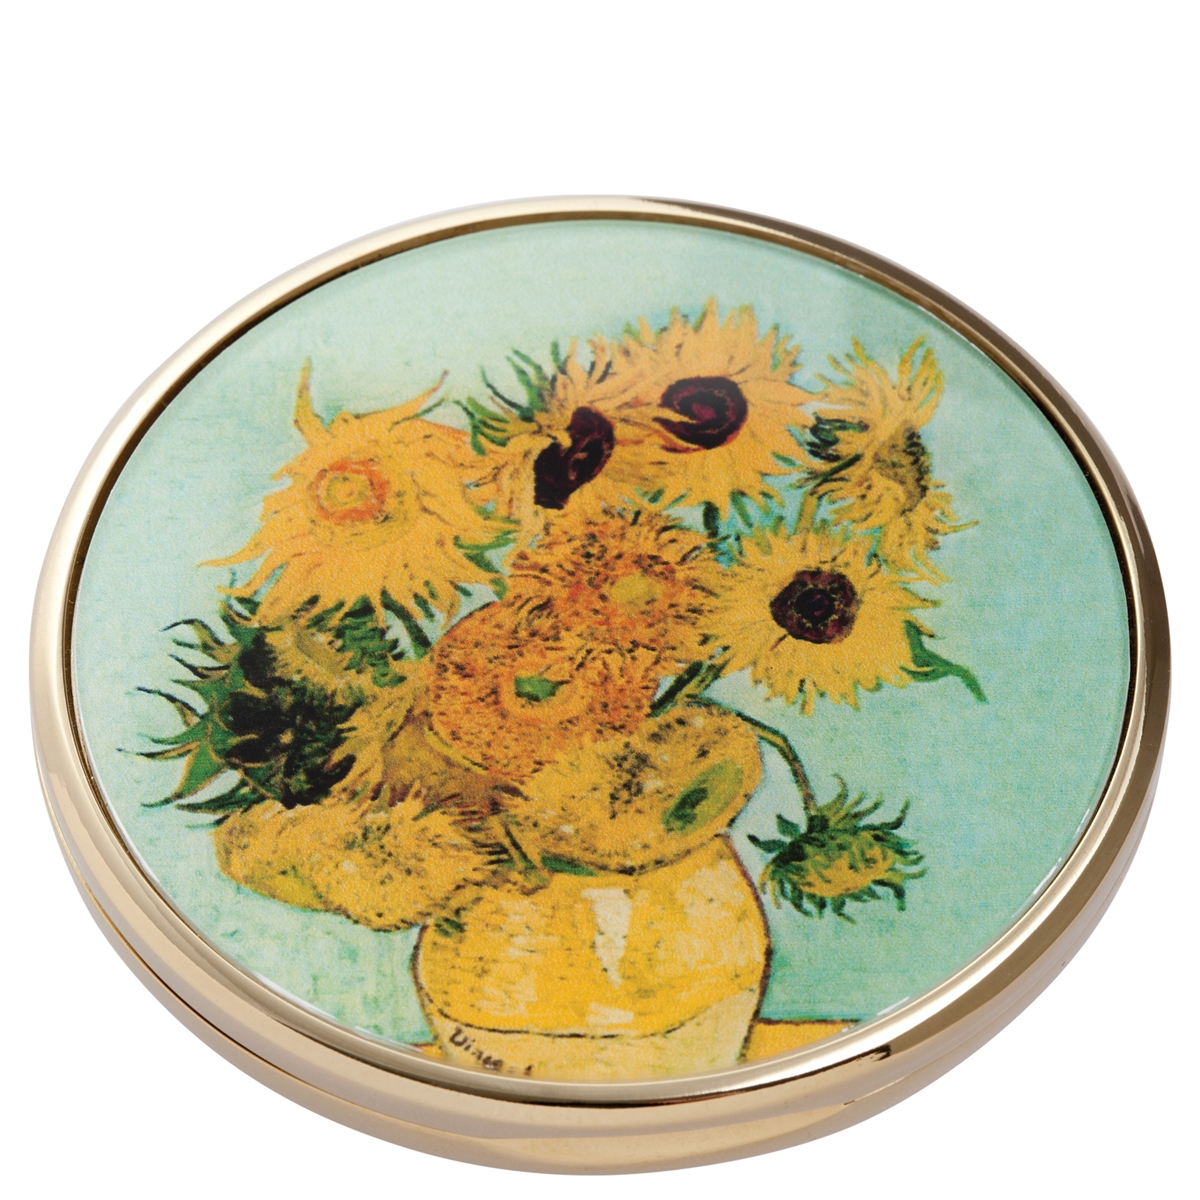 eb0a8fd432 Pocket Handbag Compact Mirror Van Gogh Sunflowers by John Beswick